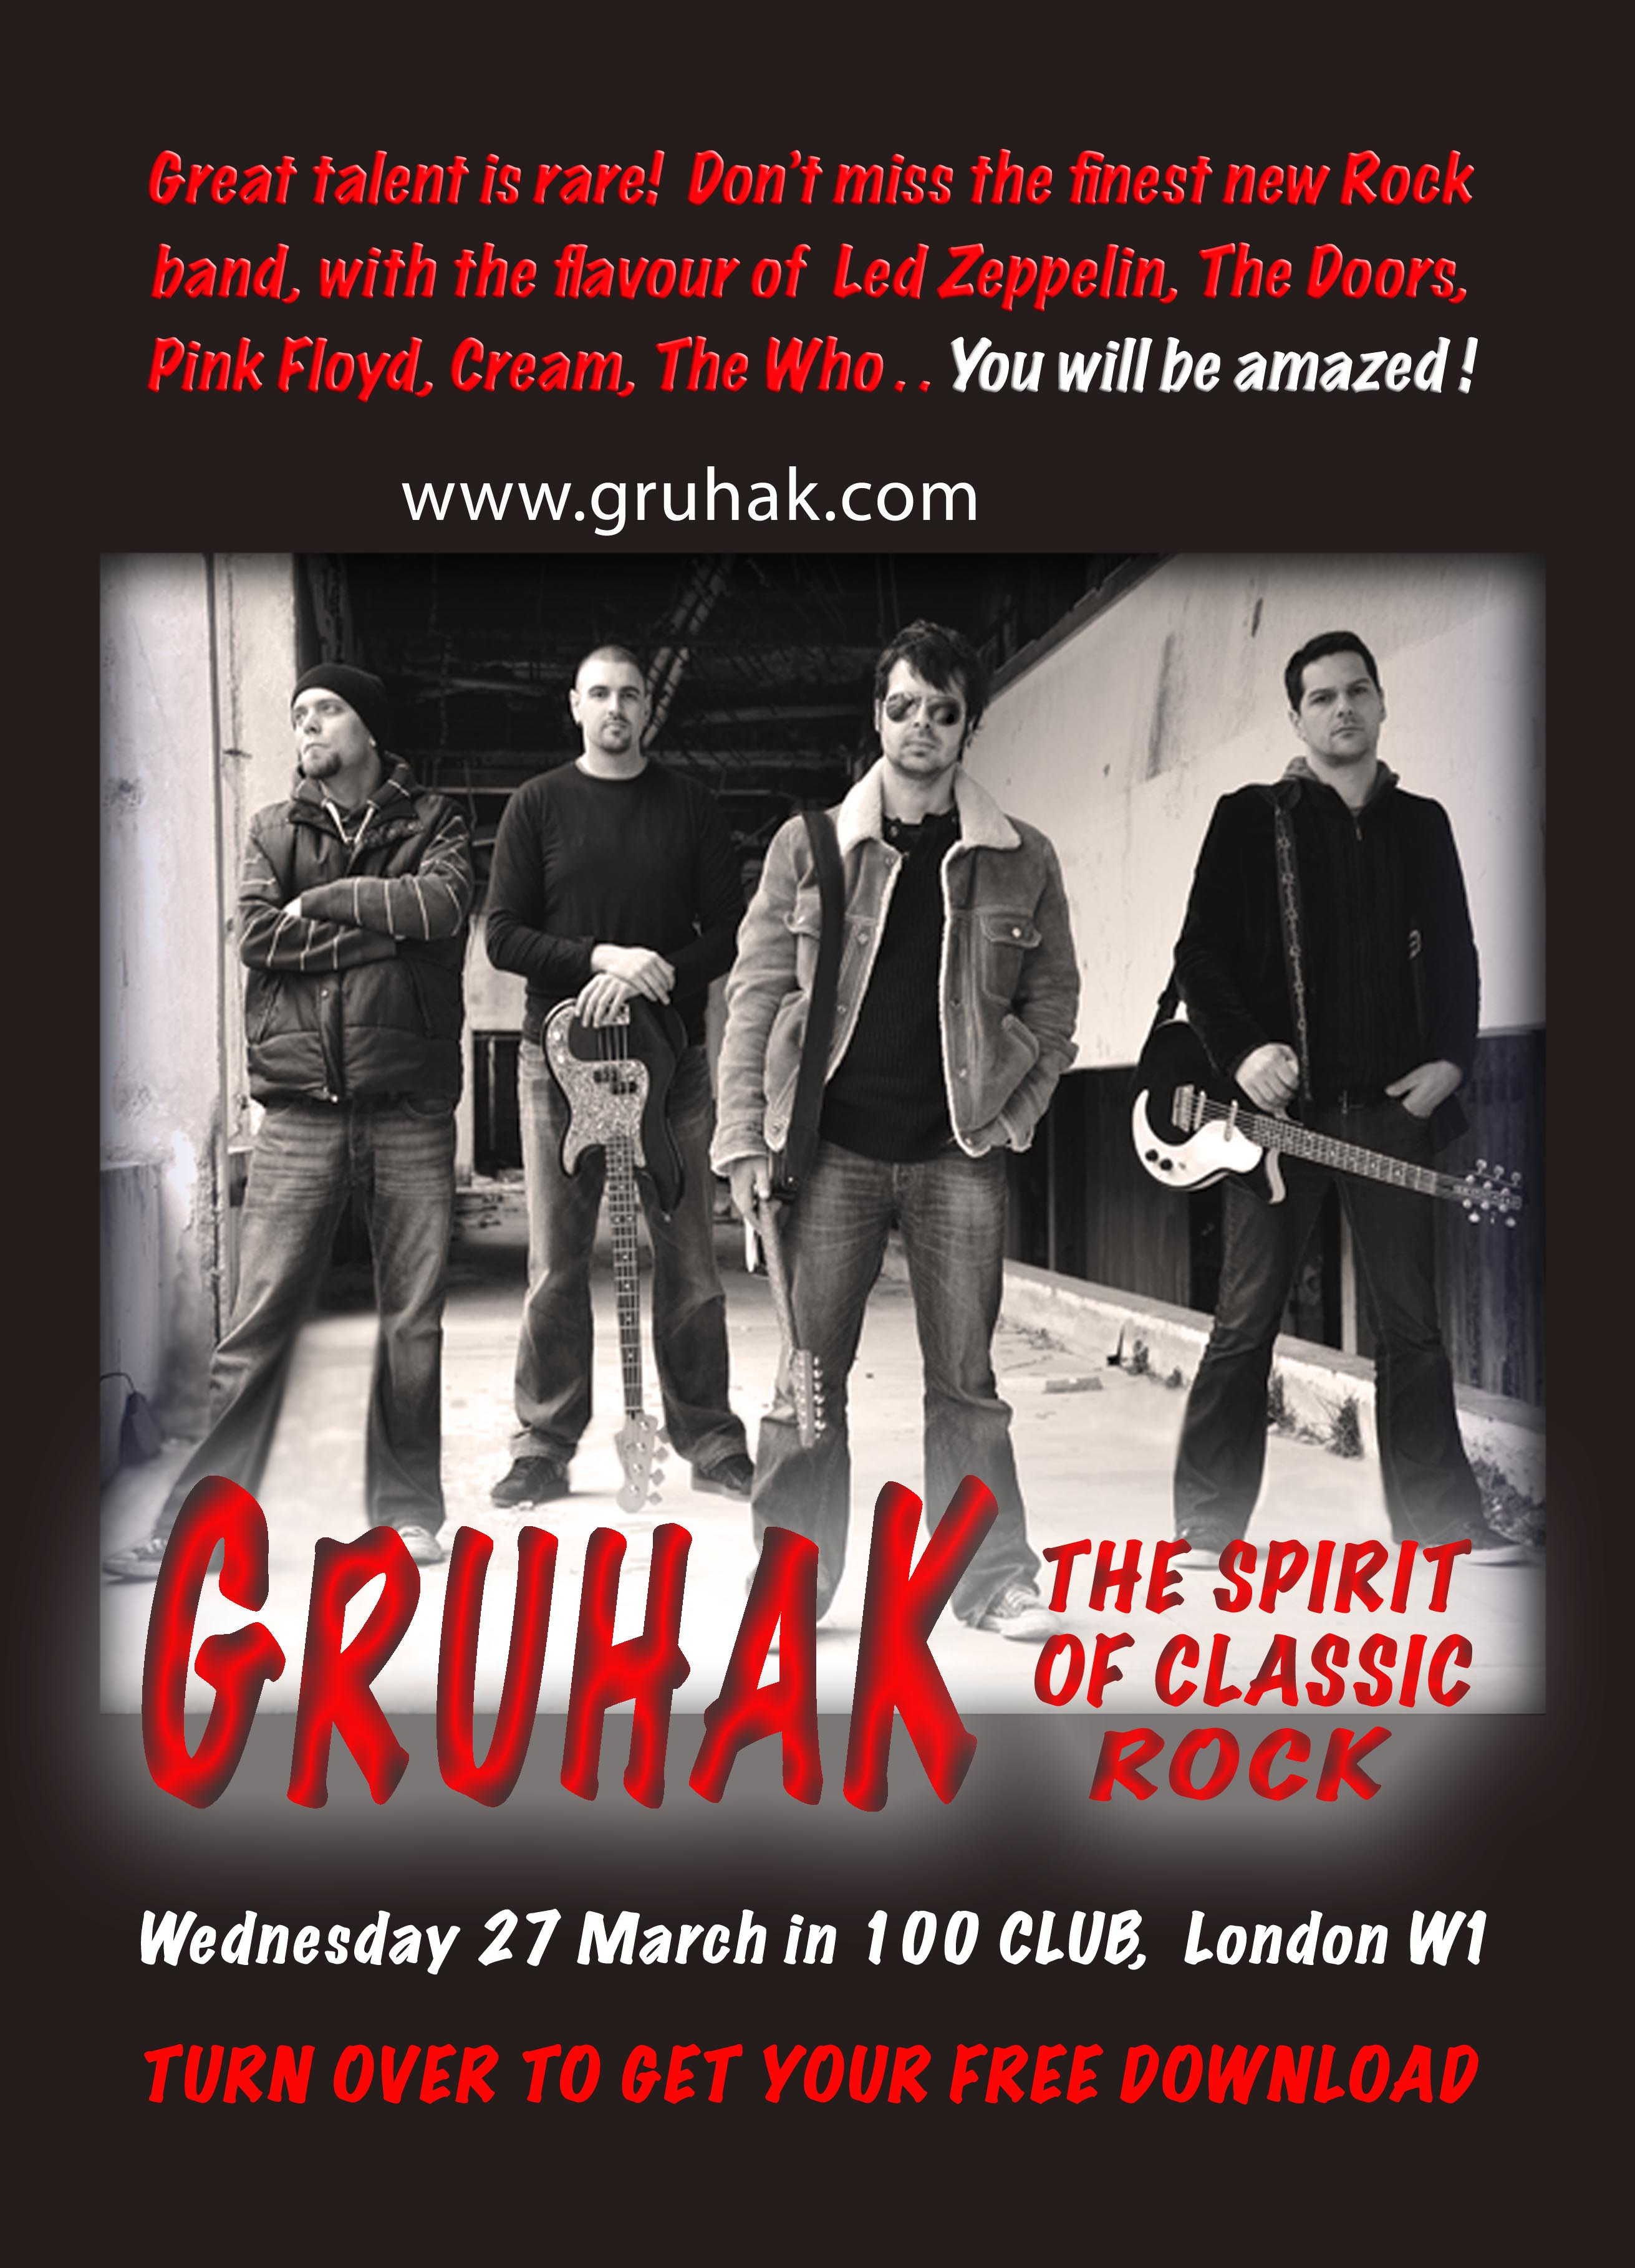 Gruhak at the 100 Club in London